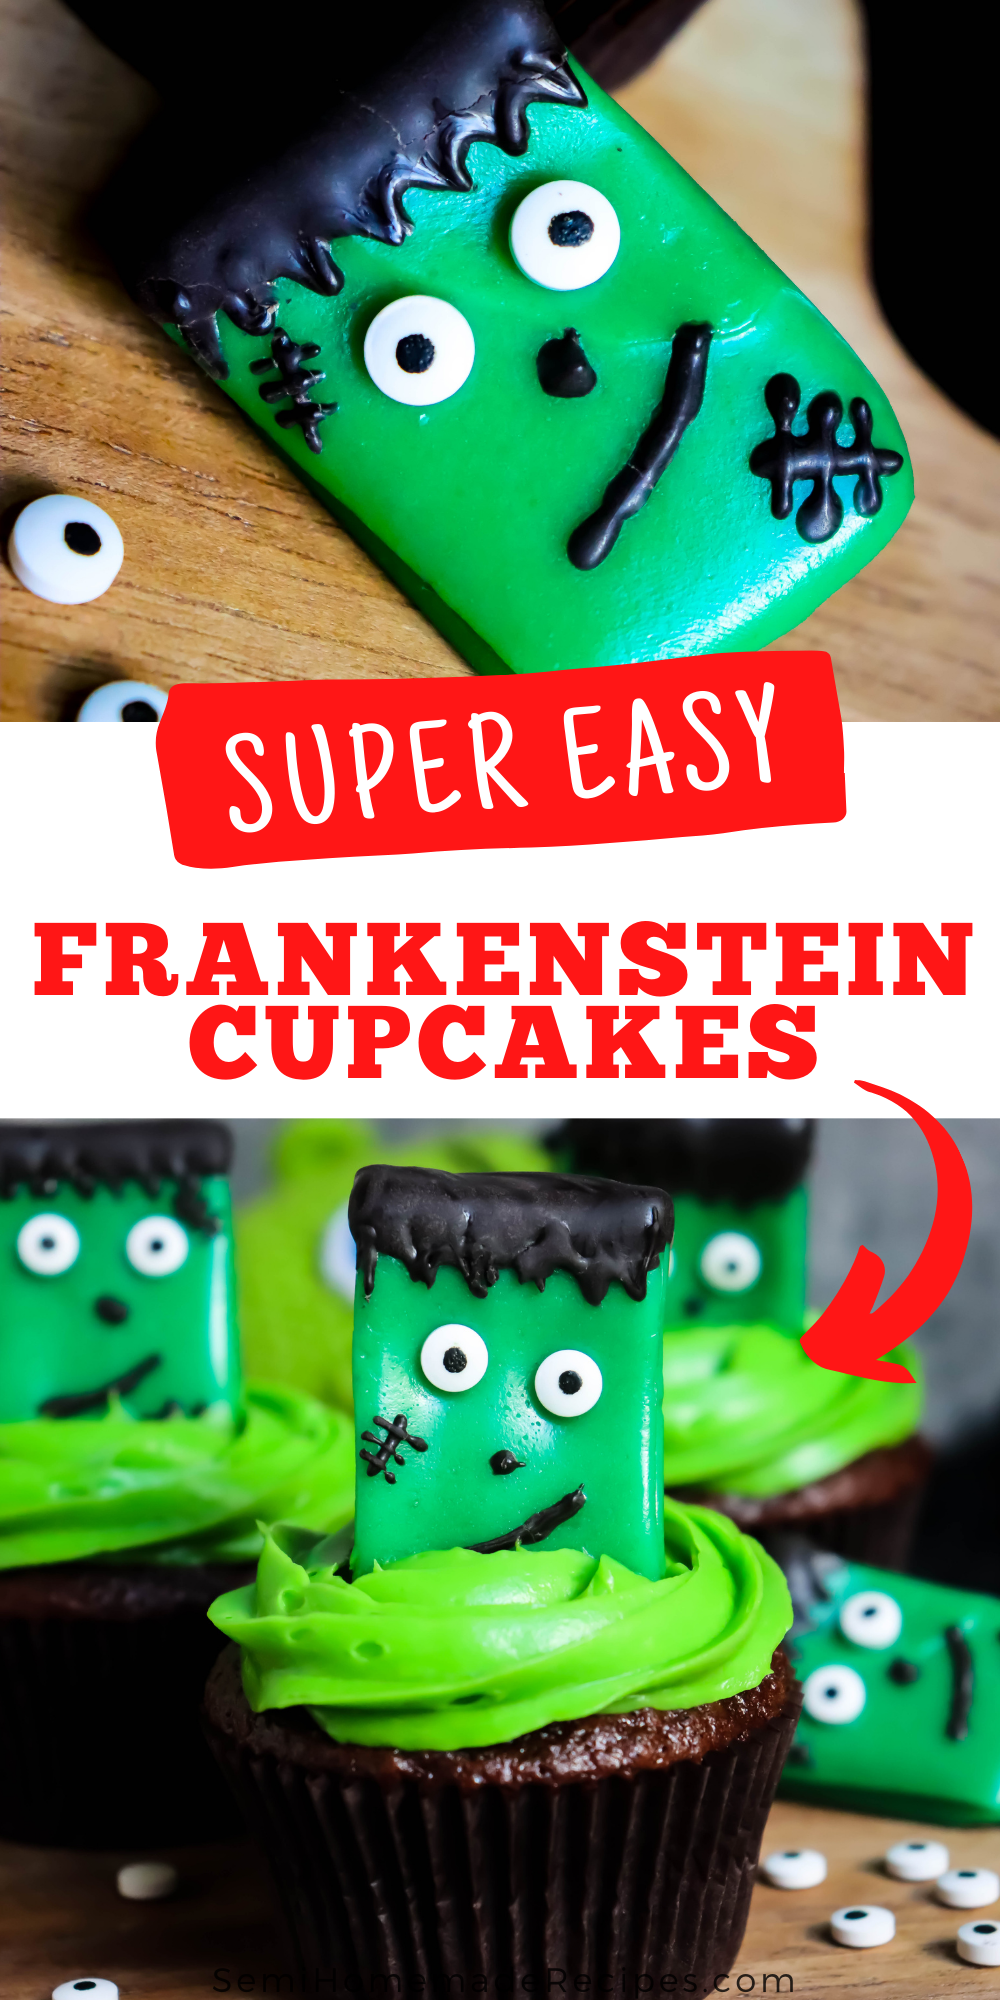 These easy Frankenstein Cupcakes are made up of chocolate cupcakes, green frosting and Frankenstein monsters made out of green airhead candy!